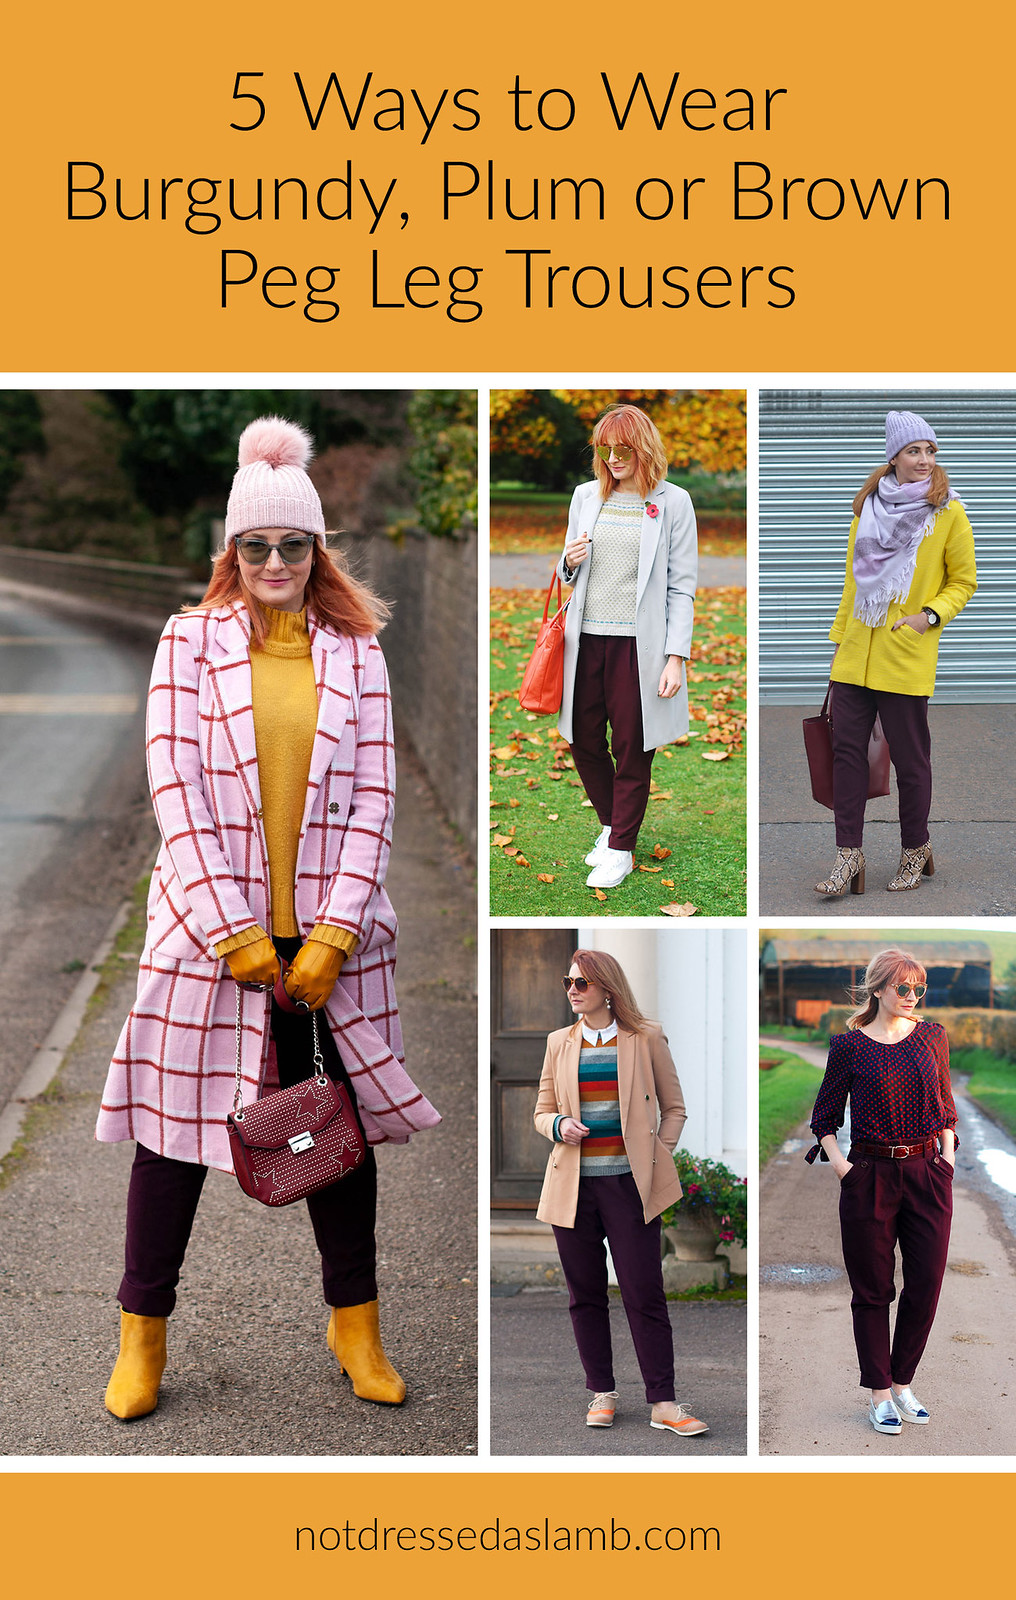 5 Ways To Wear Burgundy, Plum or Brown Peg Leg Trousers | Not Dressed As Lamb, Over 40 Fashion & Style